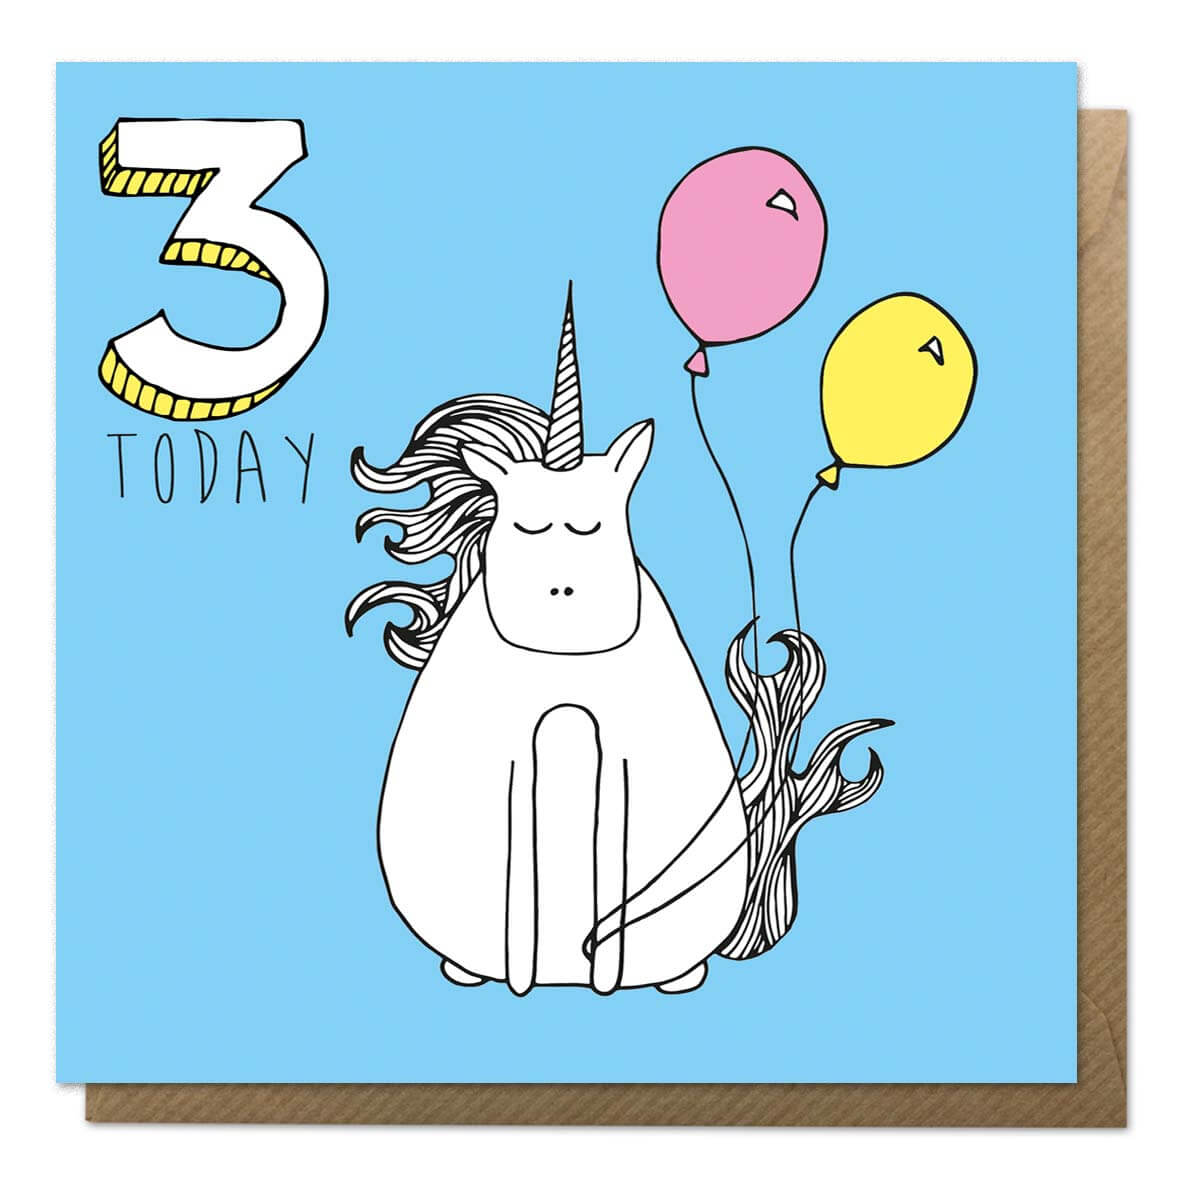 Blue 3rd birthday card with a drawing of a unicorn - Third birthday card